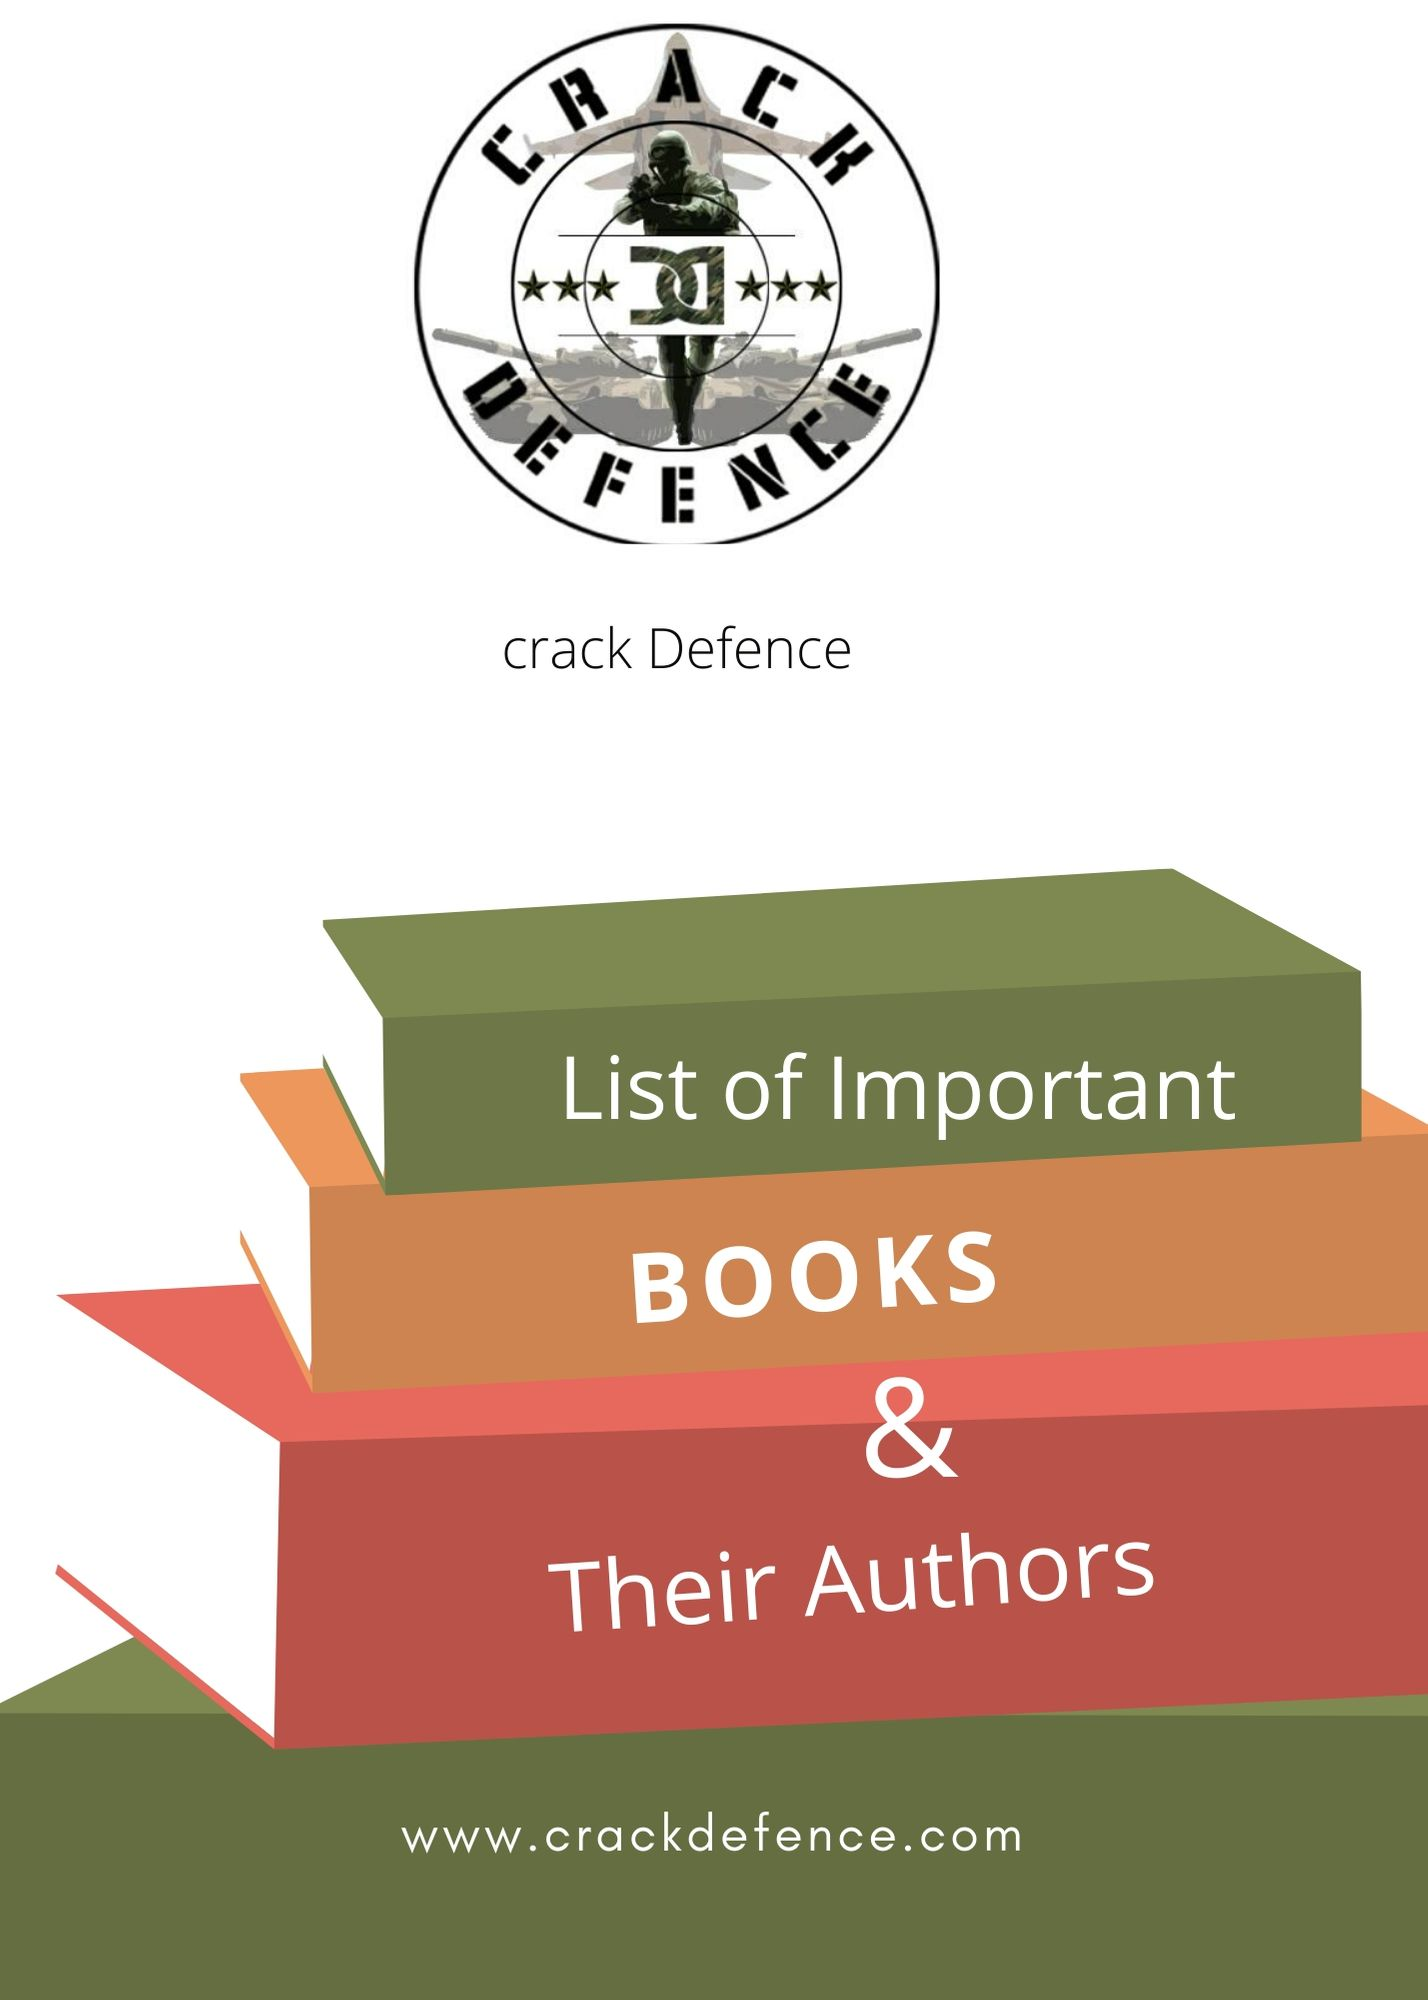 List of Important Books and their Authors.